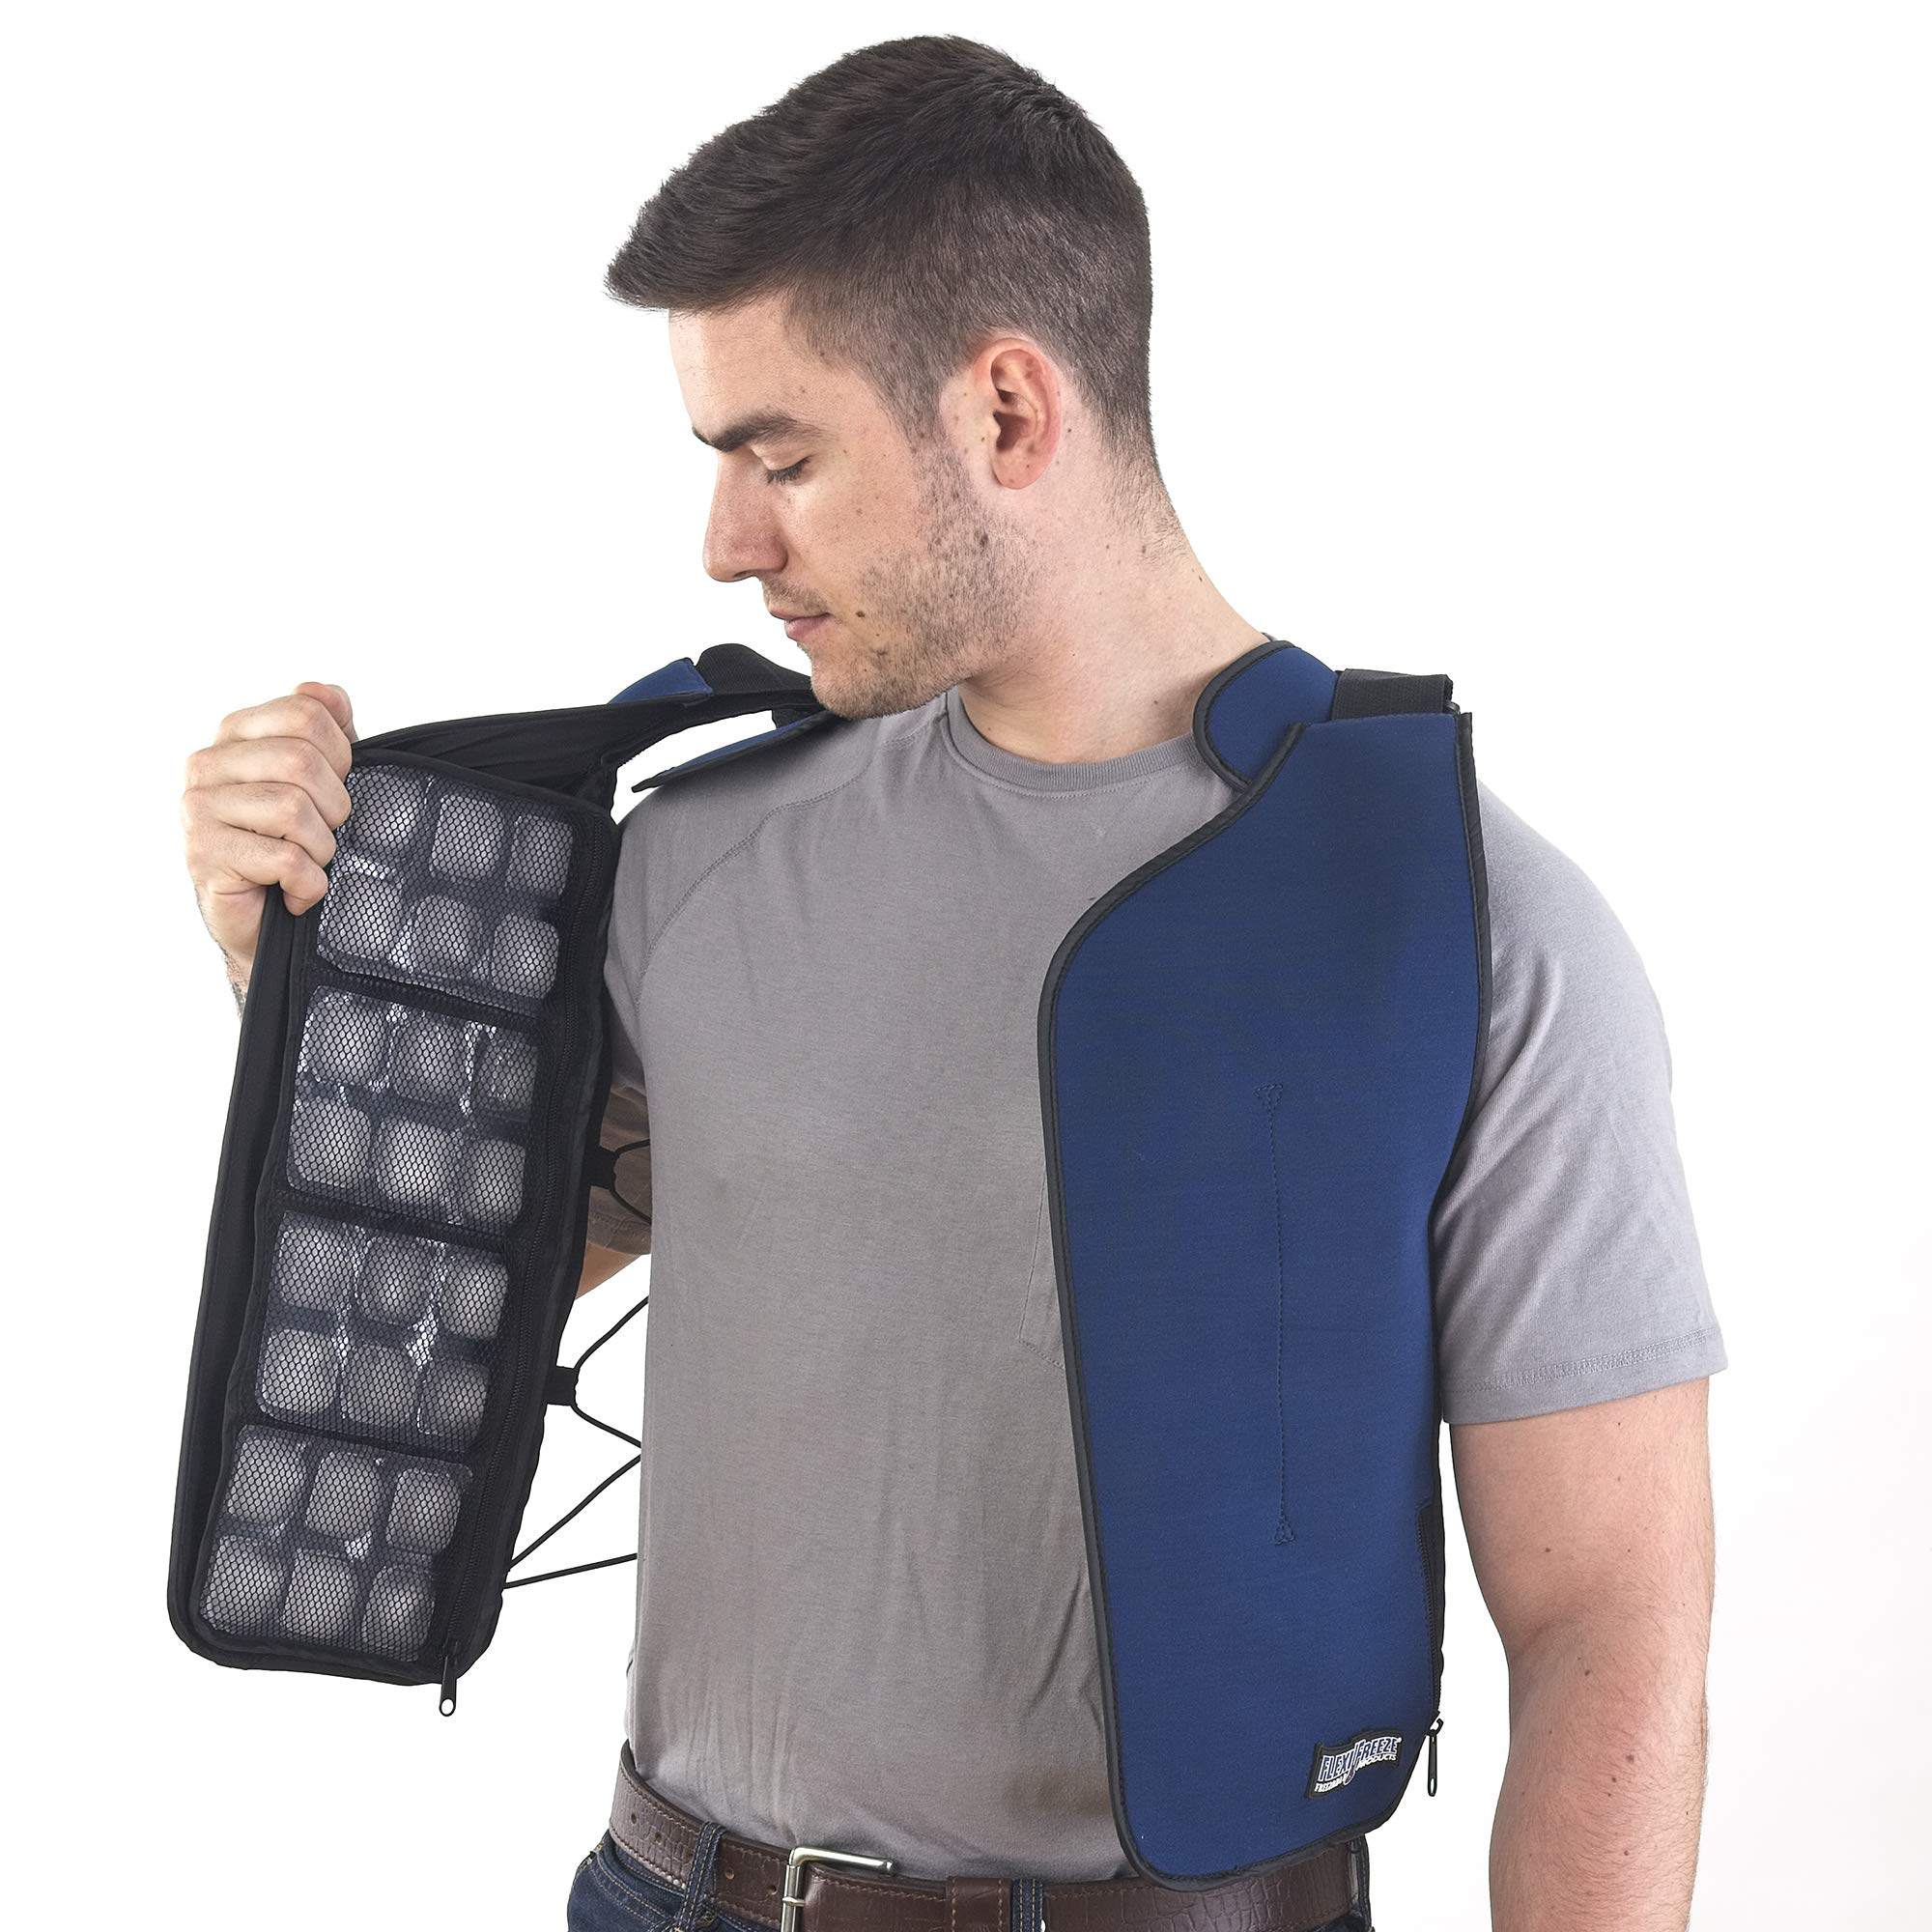 FlexiFreeze Ice Vest (Zipper Closure) by FlexiFreeze